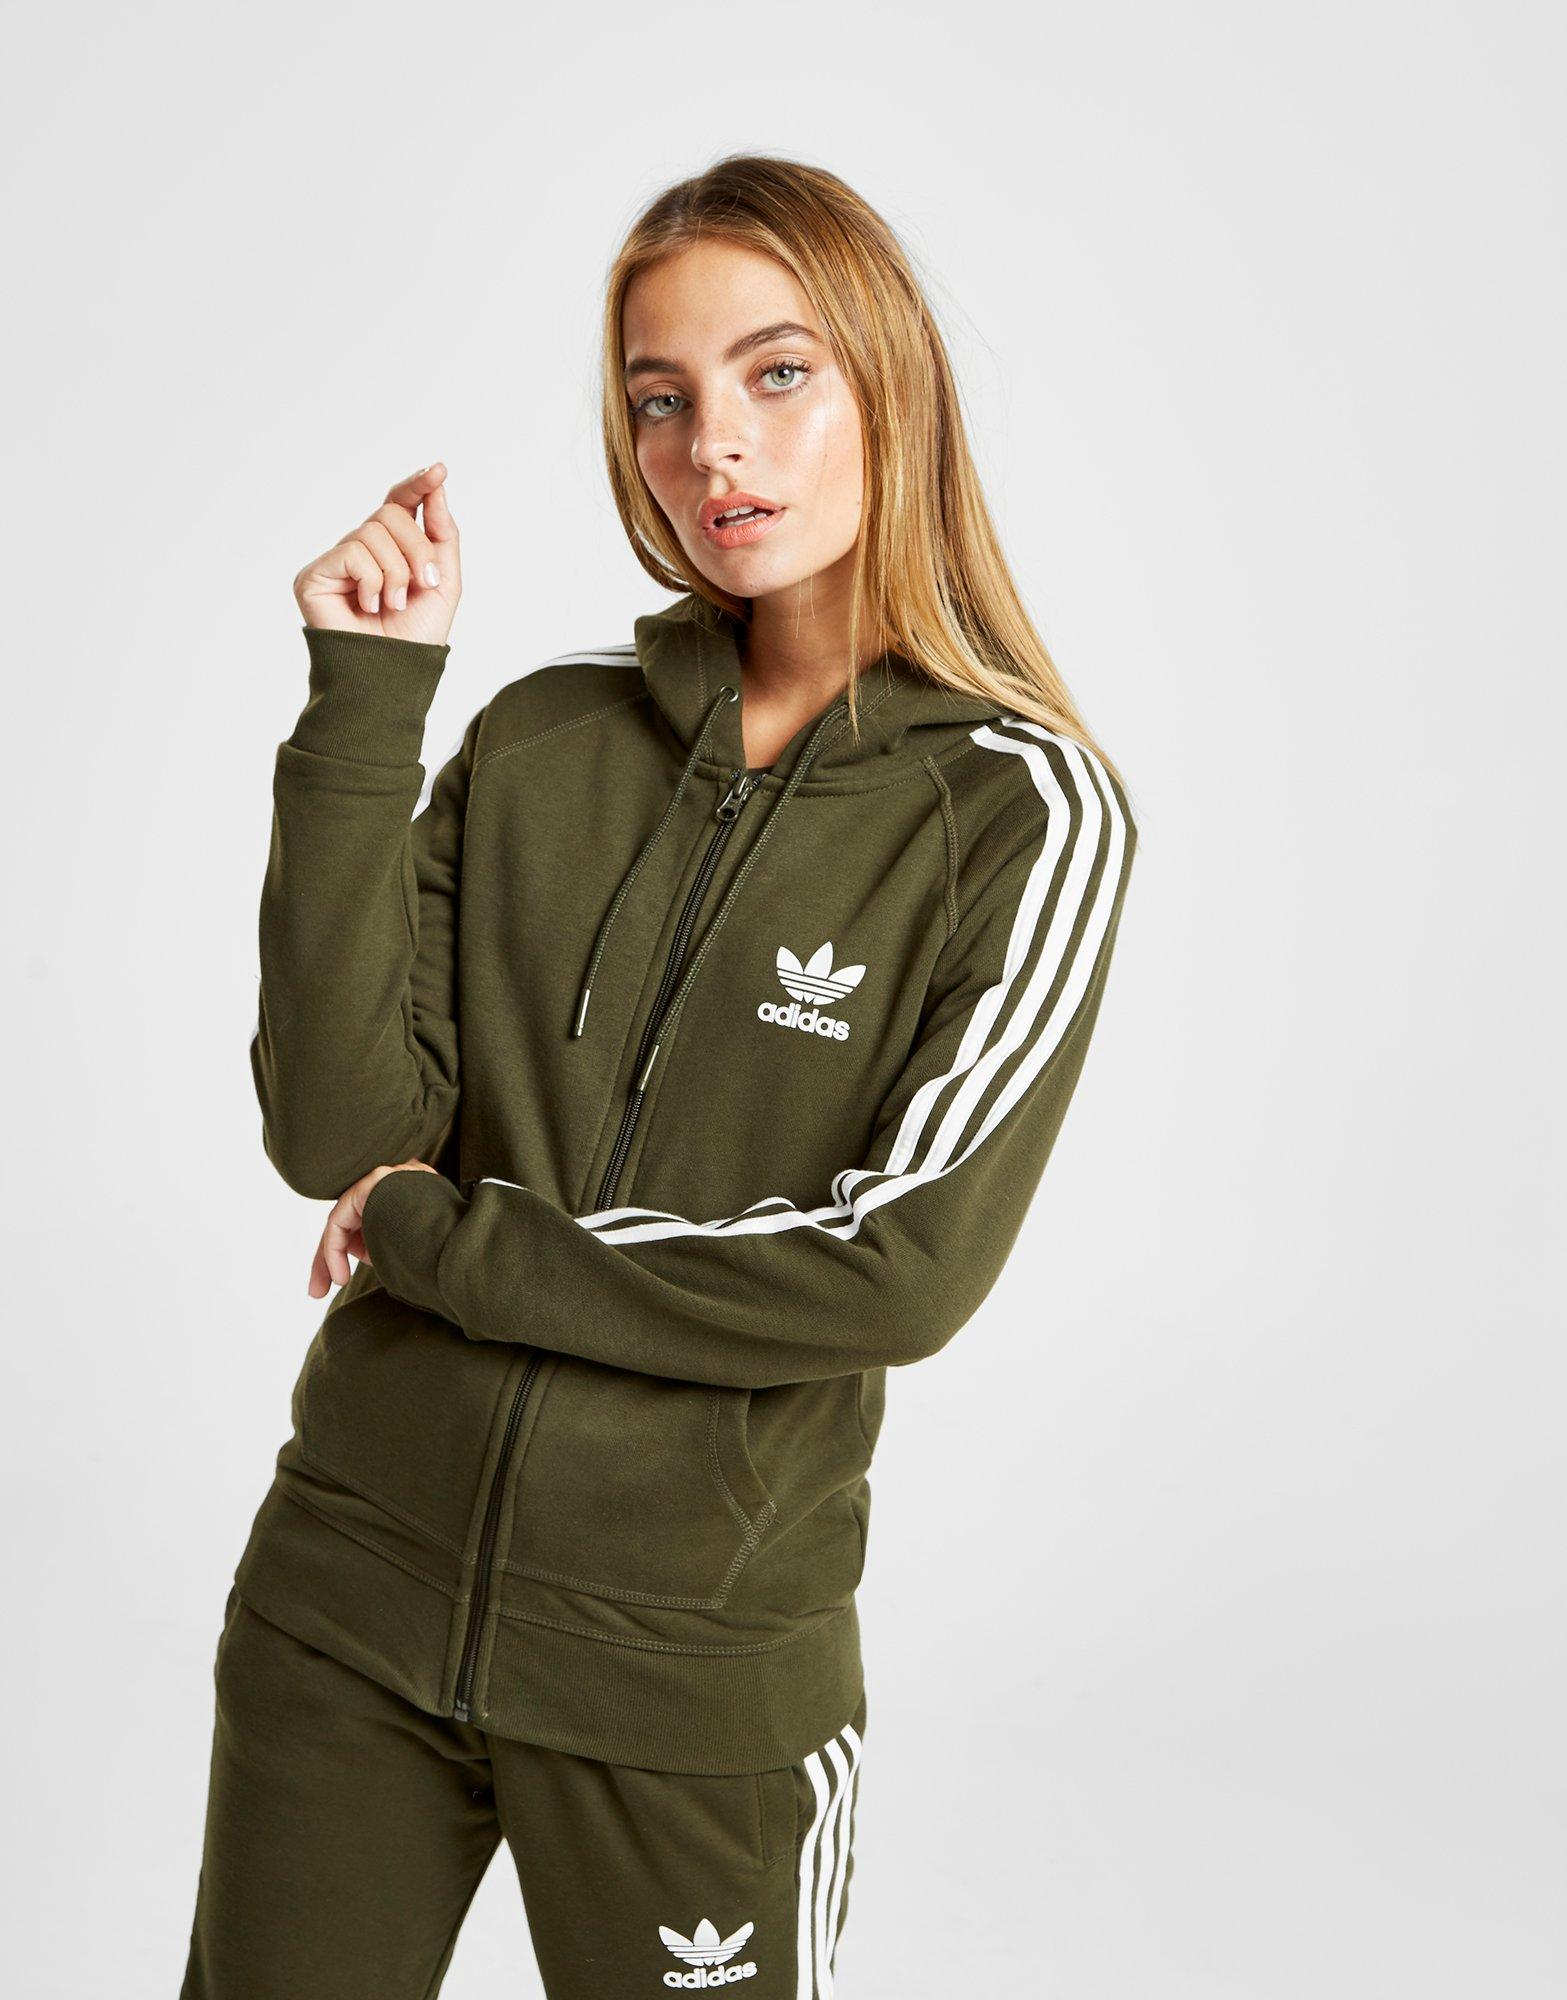 Details about New adidas Originals 3-Stripes California Full Zip Hoodie